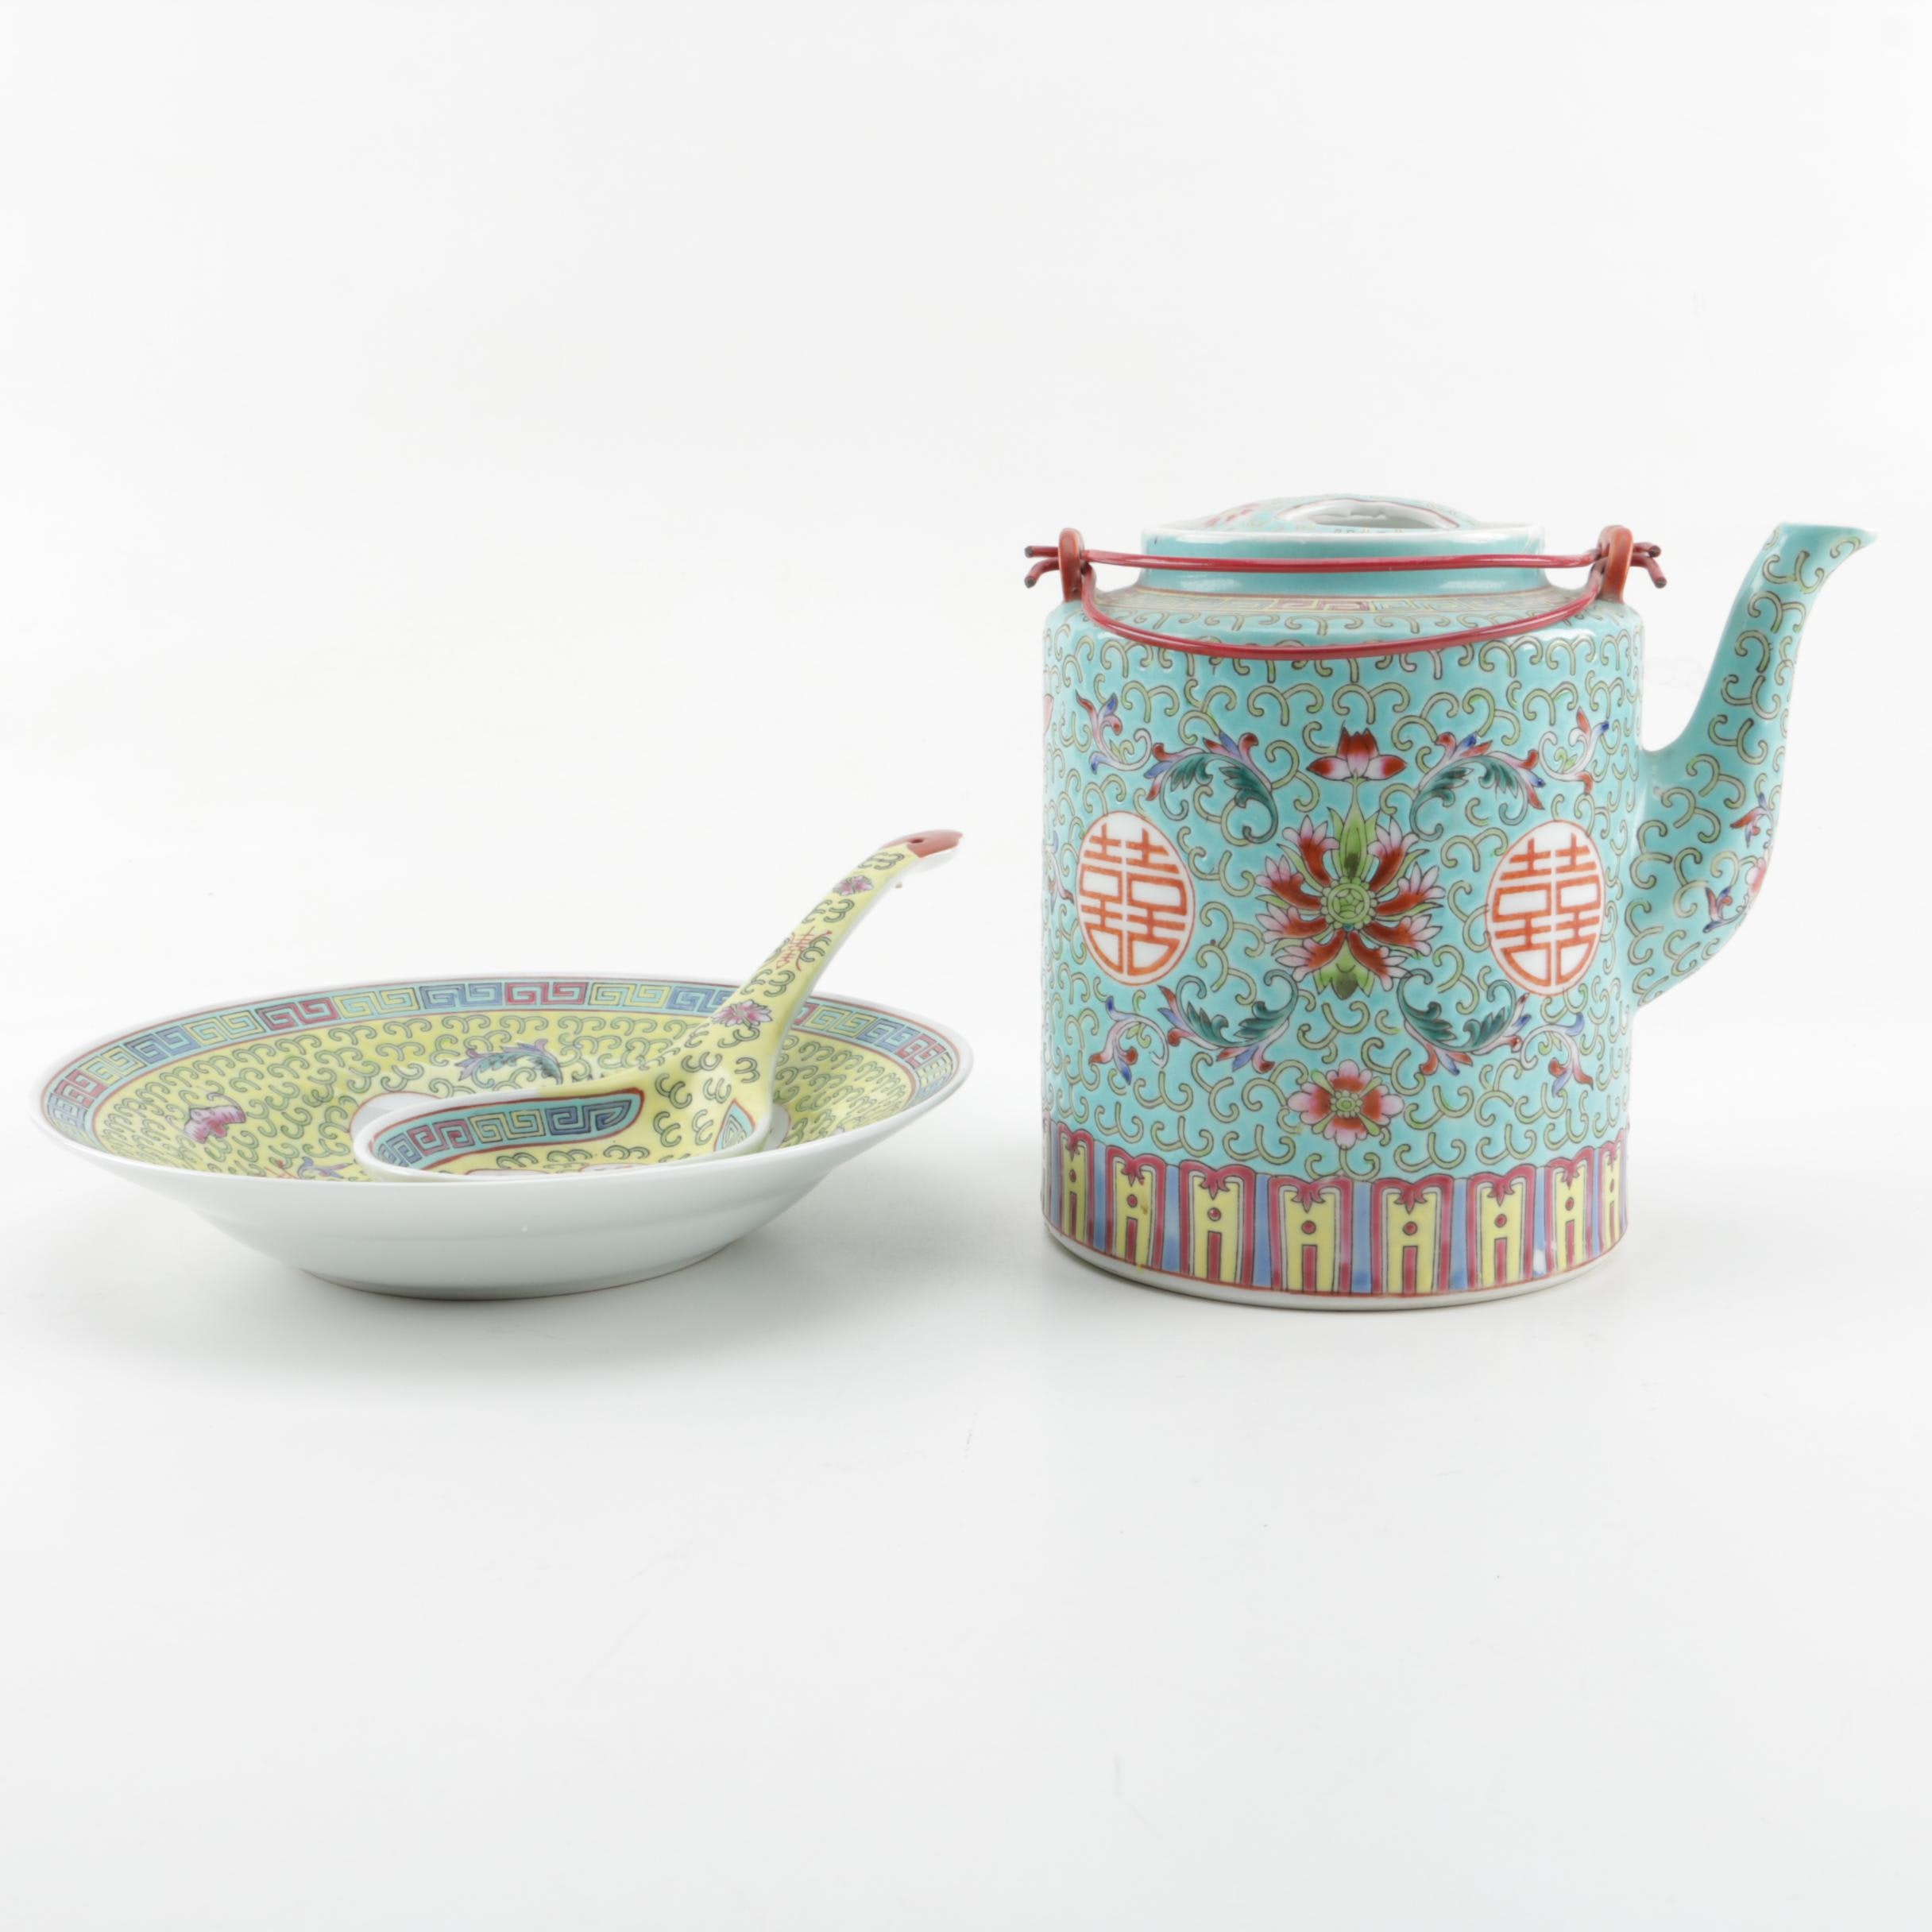 Chinese Porcelain Famille Verte Tea Kettle with Bowl and Soup Spoon